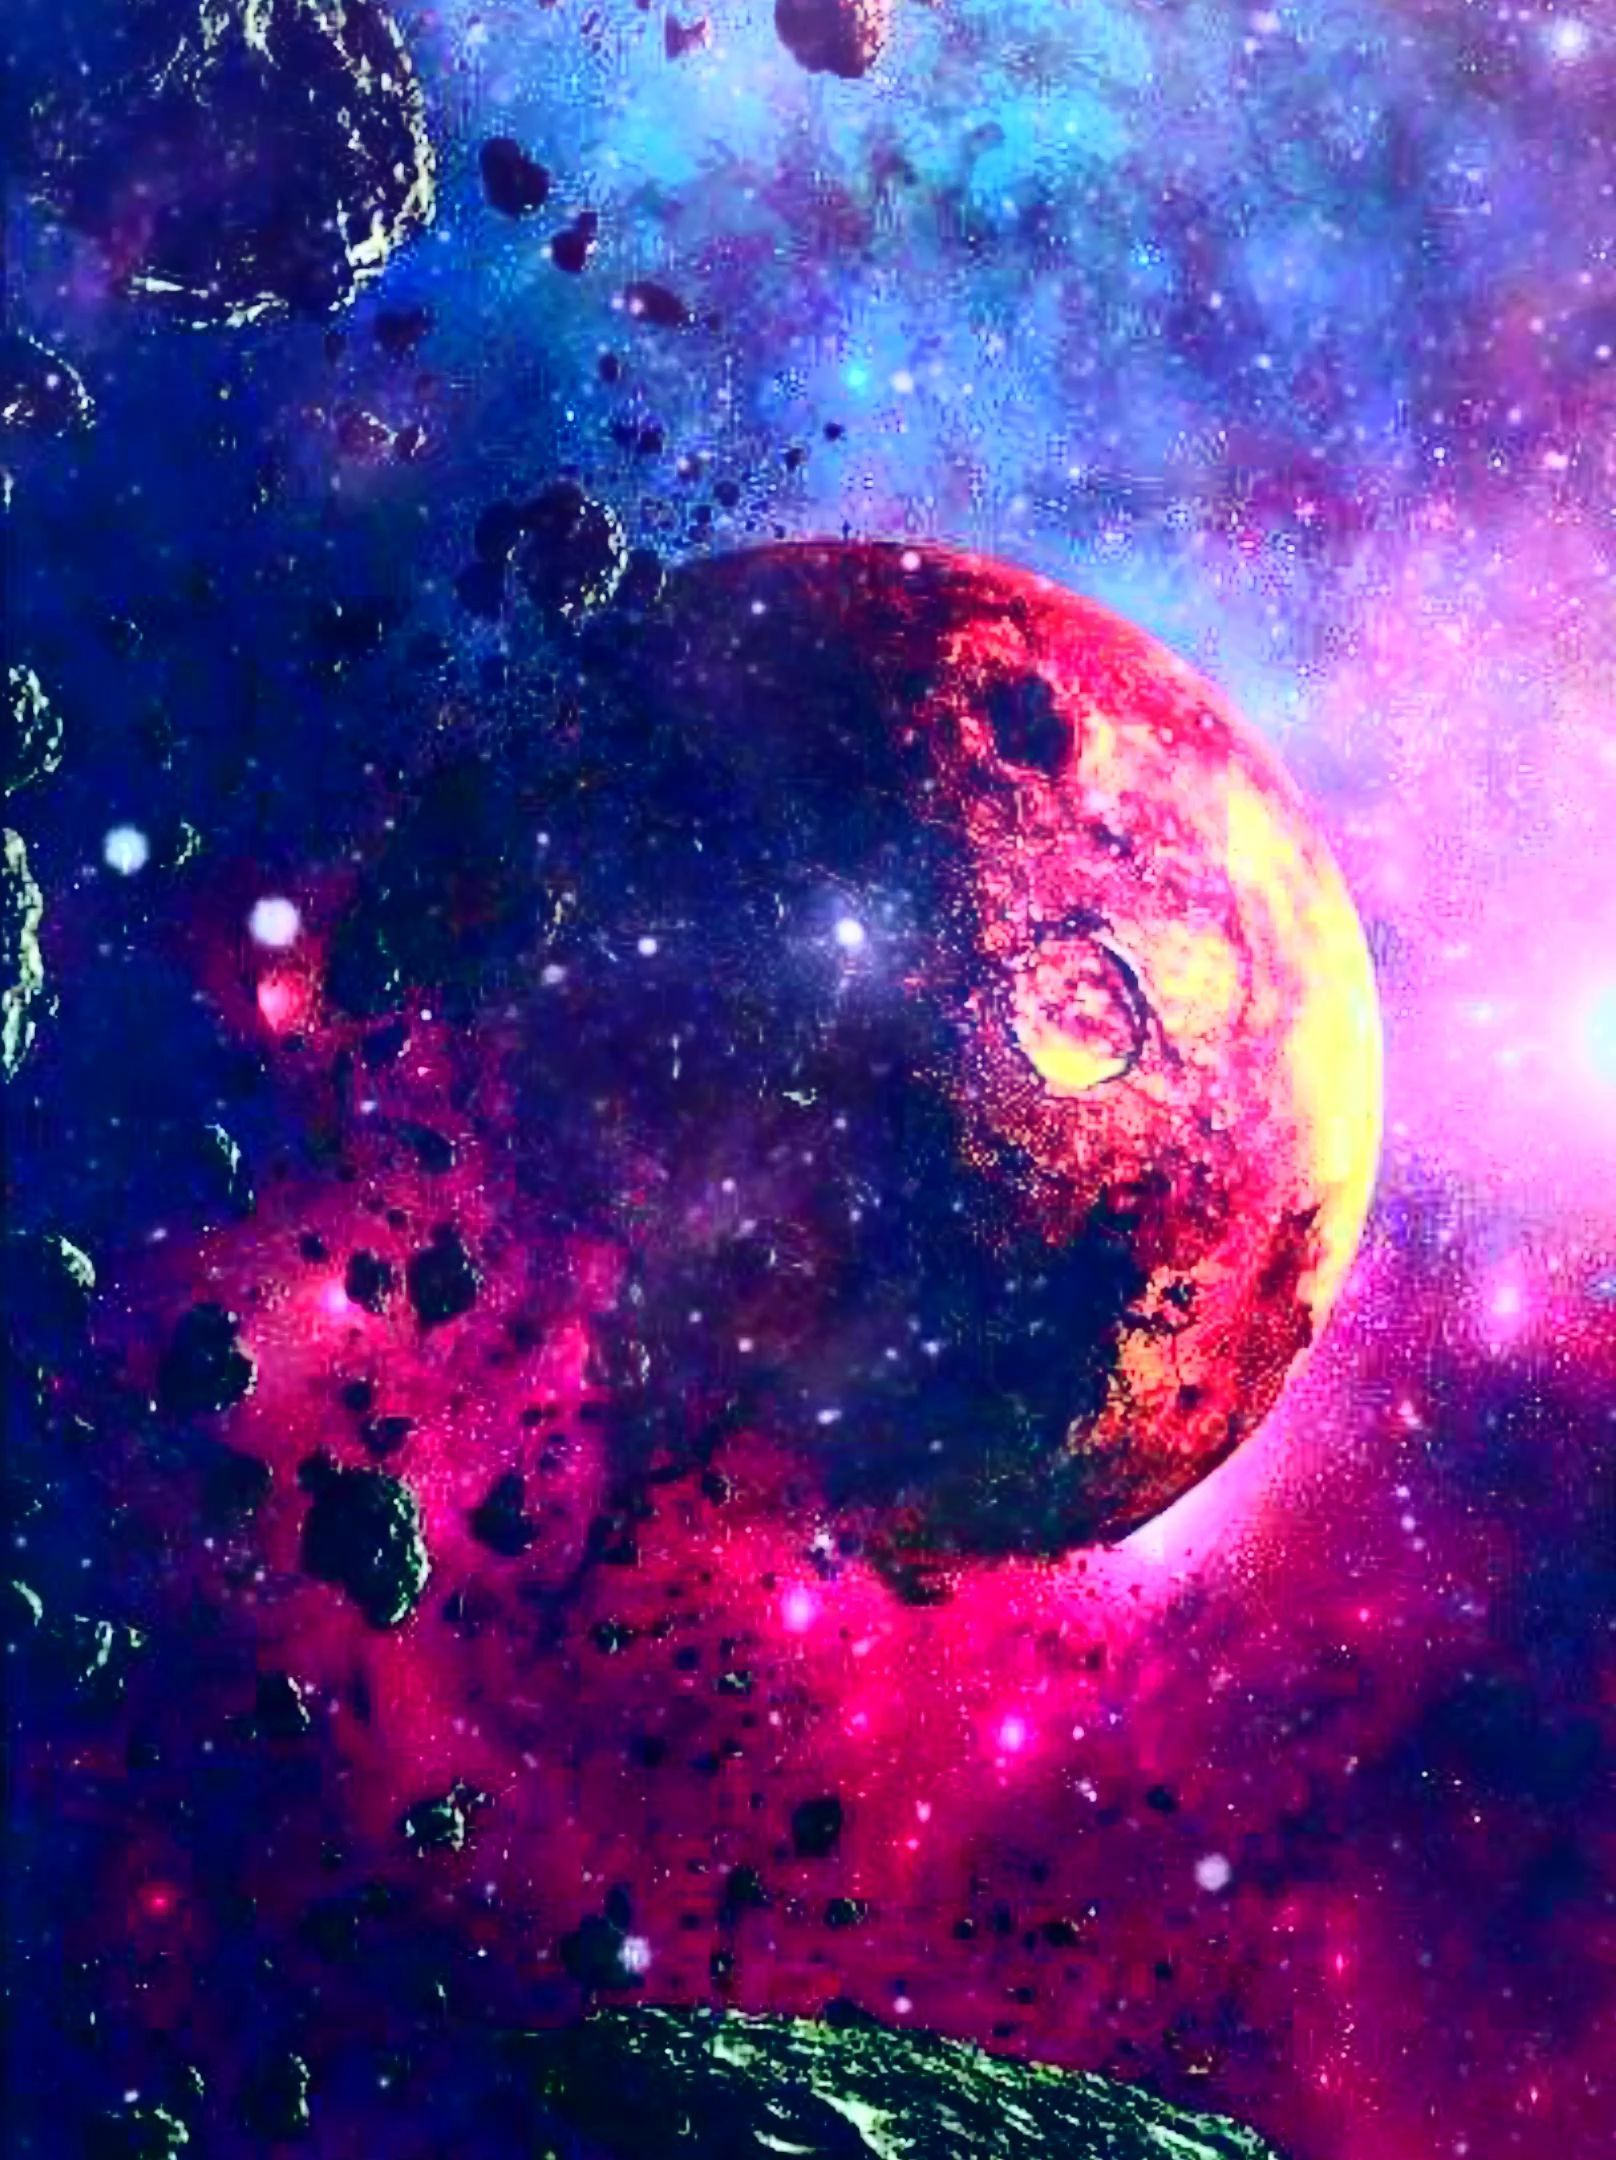 Mas Nuevo Instantaneas Flores Fondos De Videos Ideas Rojo Planeta Galaxia Animaciones Space Painting Galaxy Galaxy Artwork Galaxy Photos